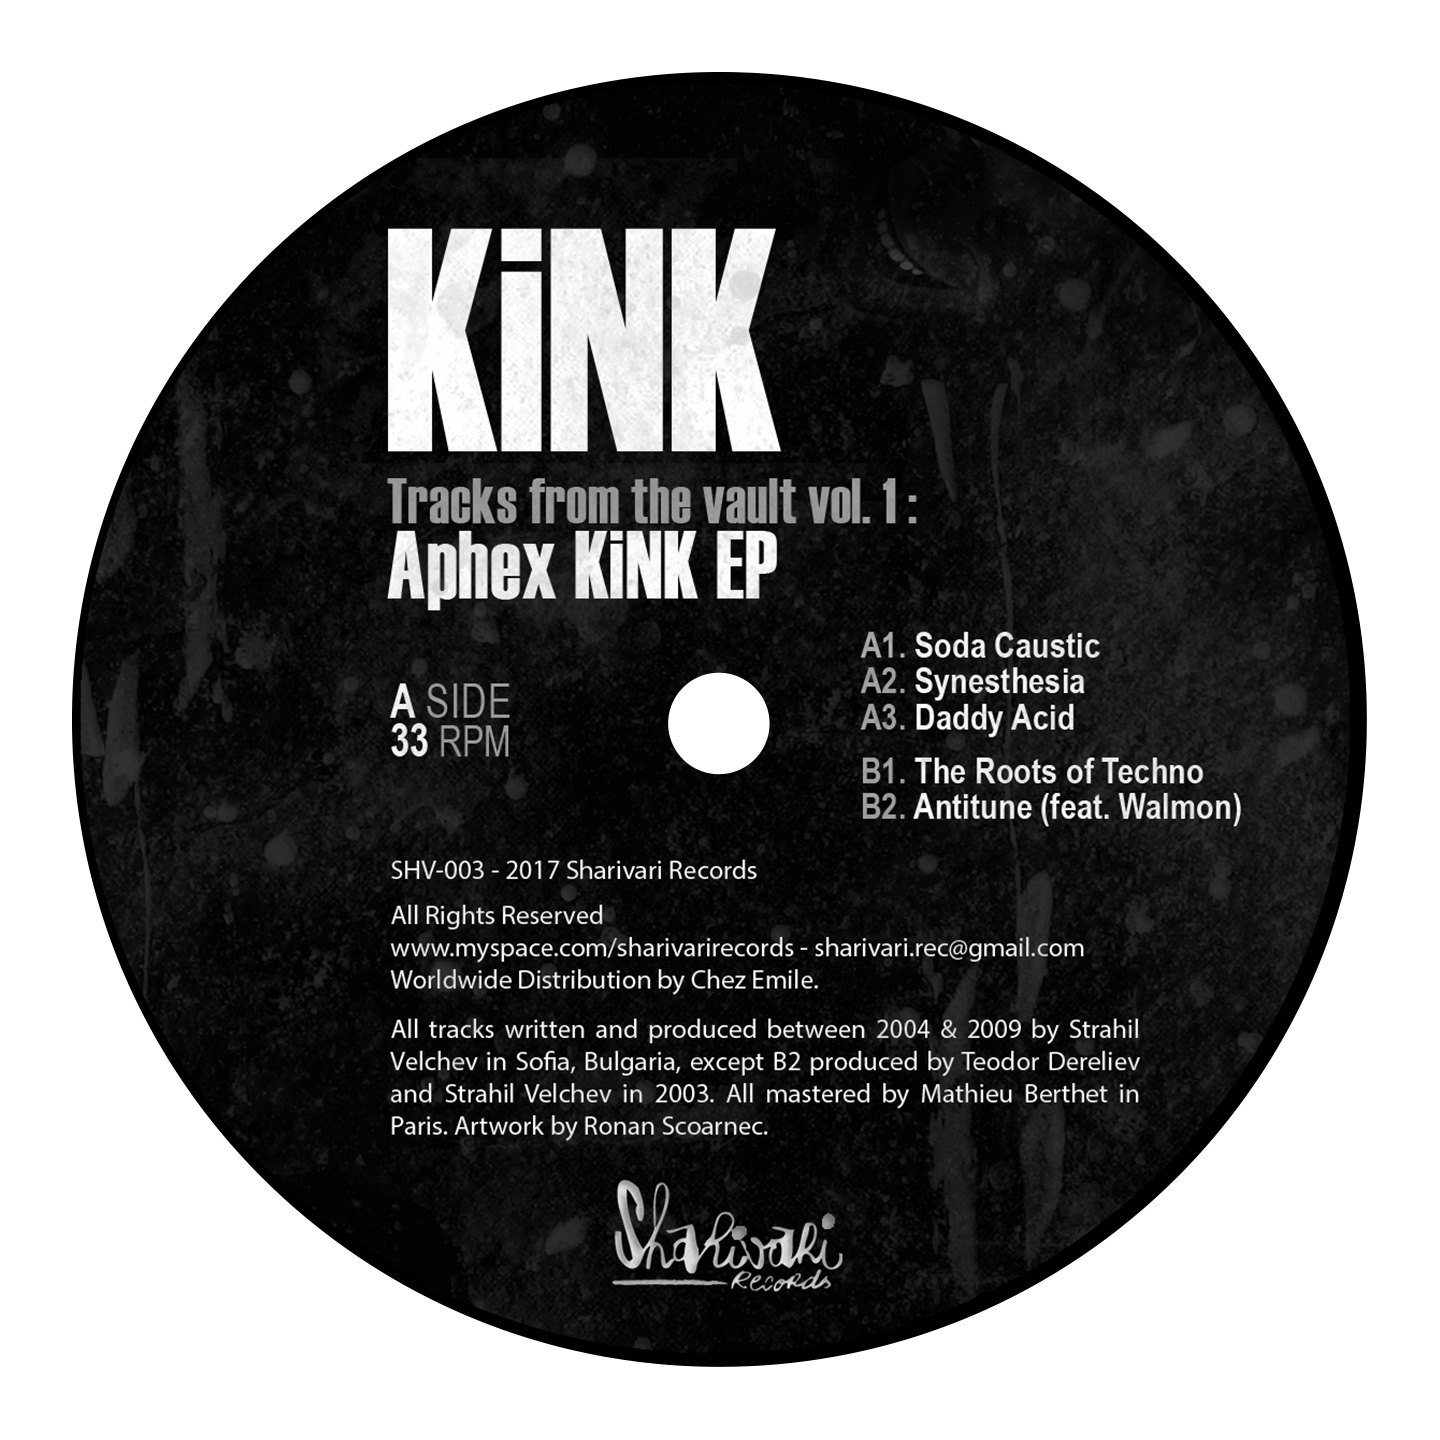 KiNK - Aphex KiNK (Special Edition) [SHV003]